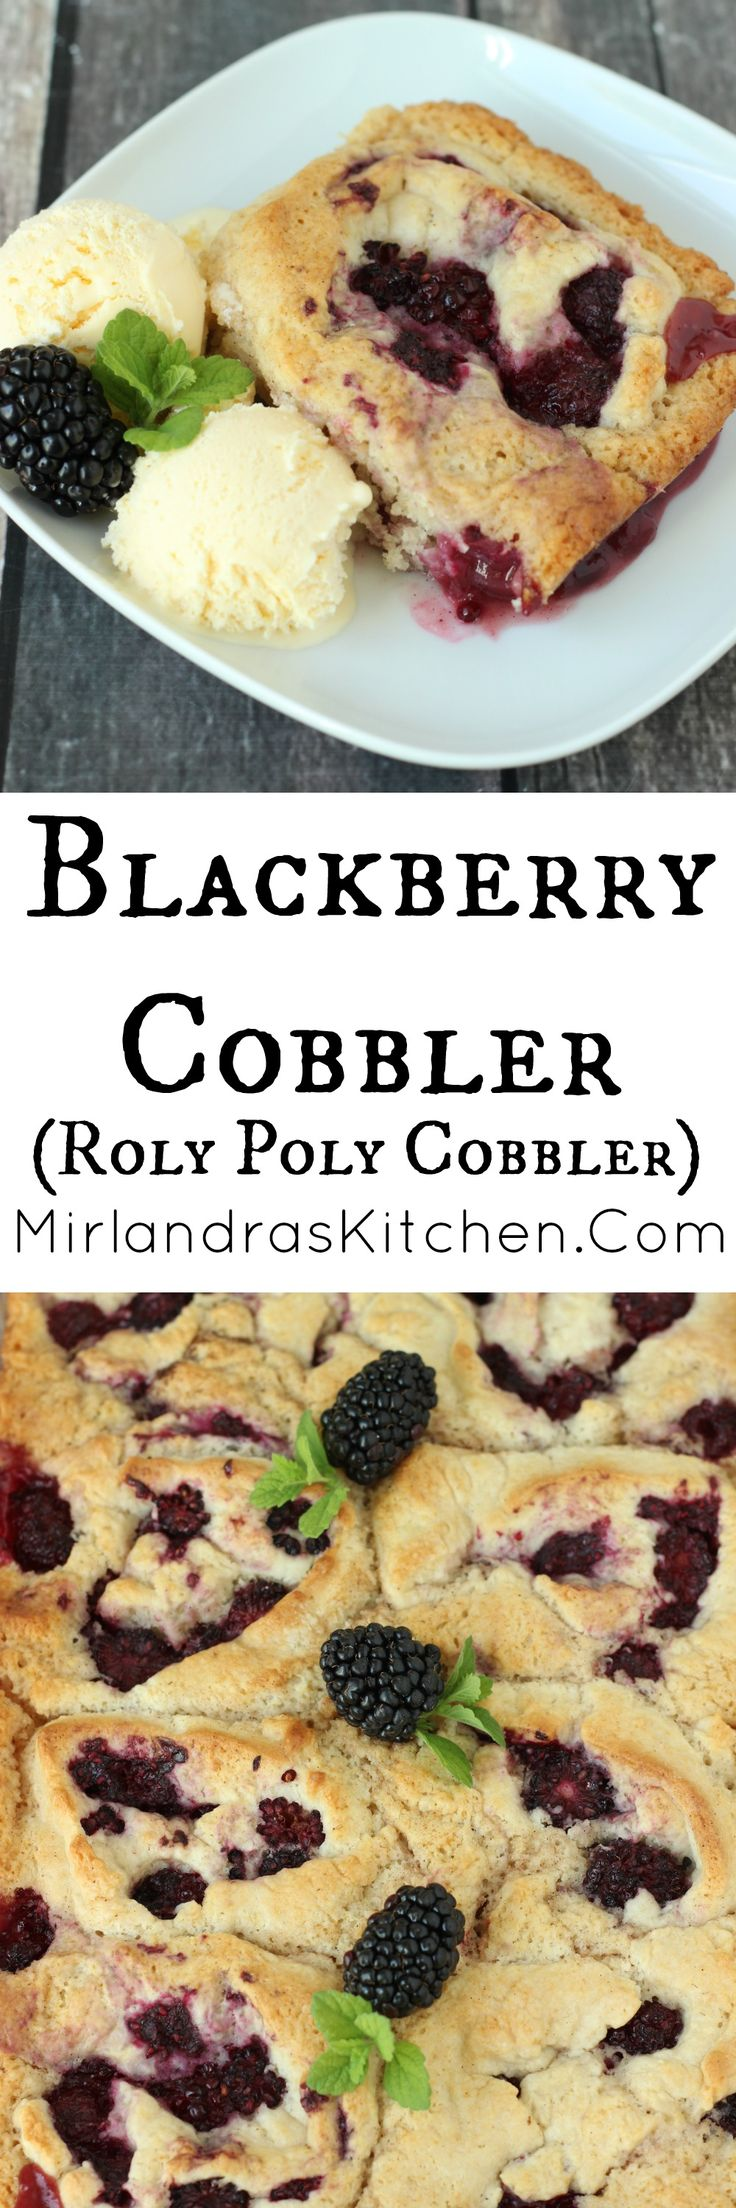 "This old fashioned recipe for Blackberry Cobbler is a gem.  It calls for Bisquick which keeps things simple but the final results taste like homemade hard work!  The secret is in the syrup used to bake the rolls.  It creates a wonderful sweet treat with crunchy edges and succulent blackberries! (This recipe also goes by the names ""Diddle Diddle Dumplings"" and ""Blackberry Roll Ups."""